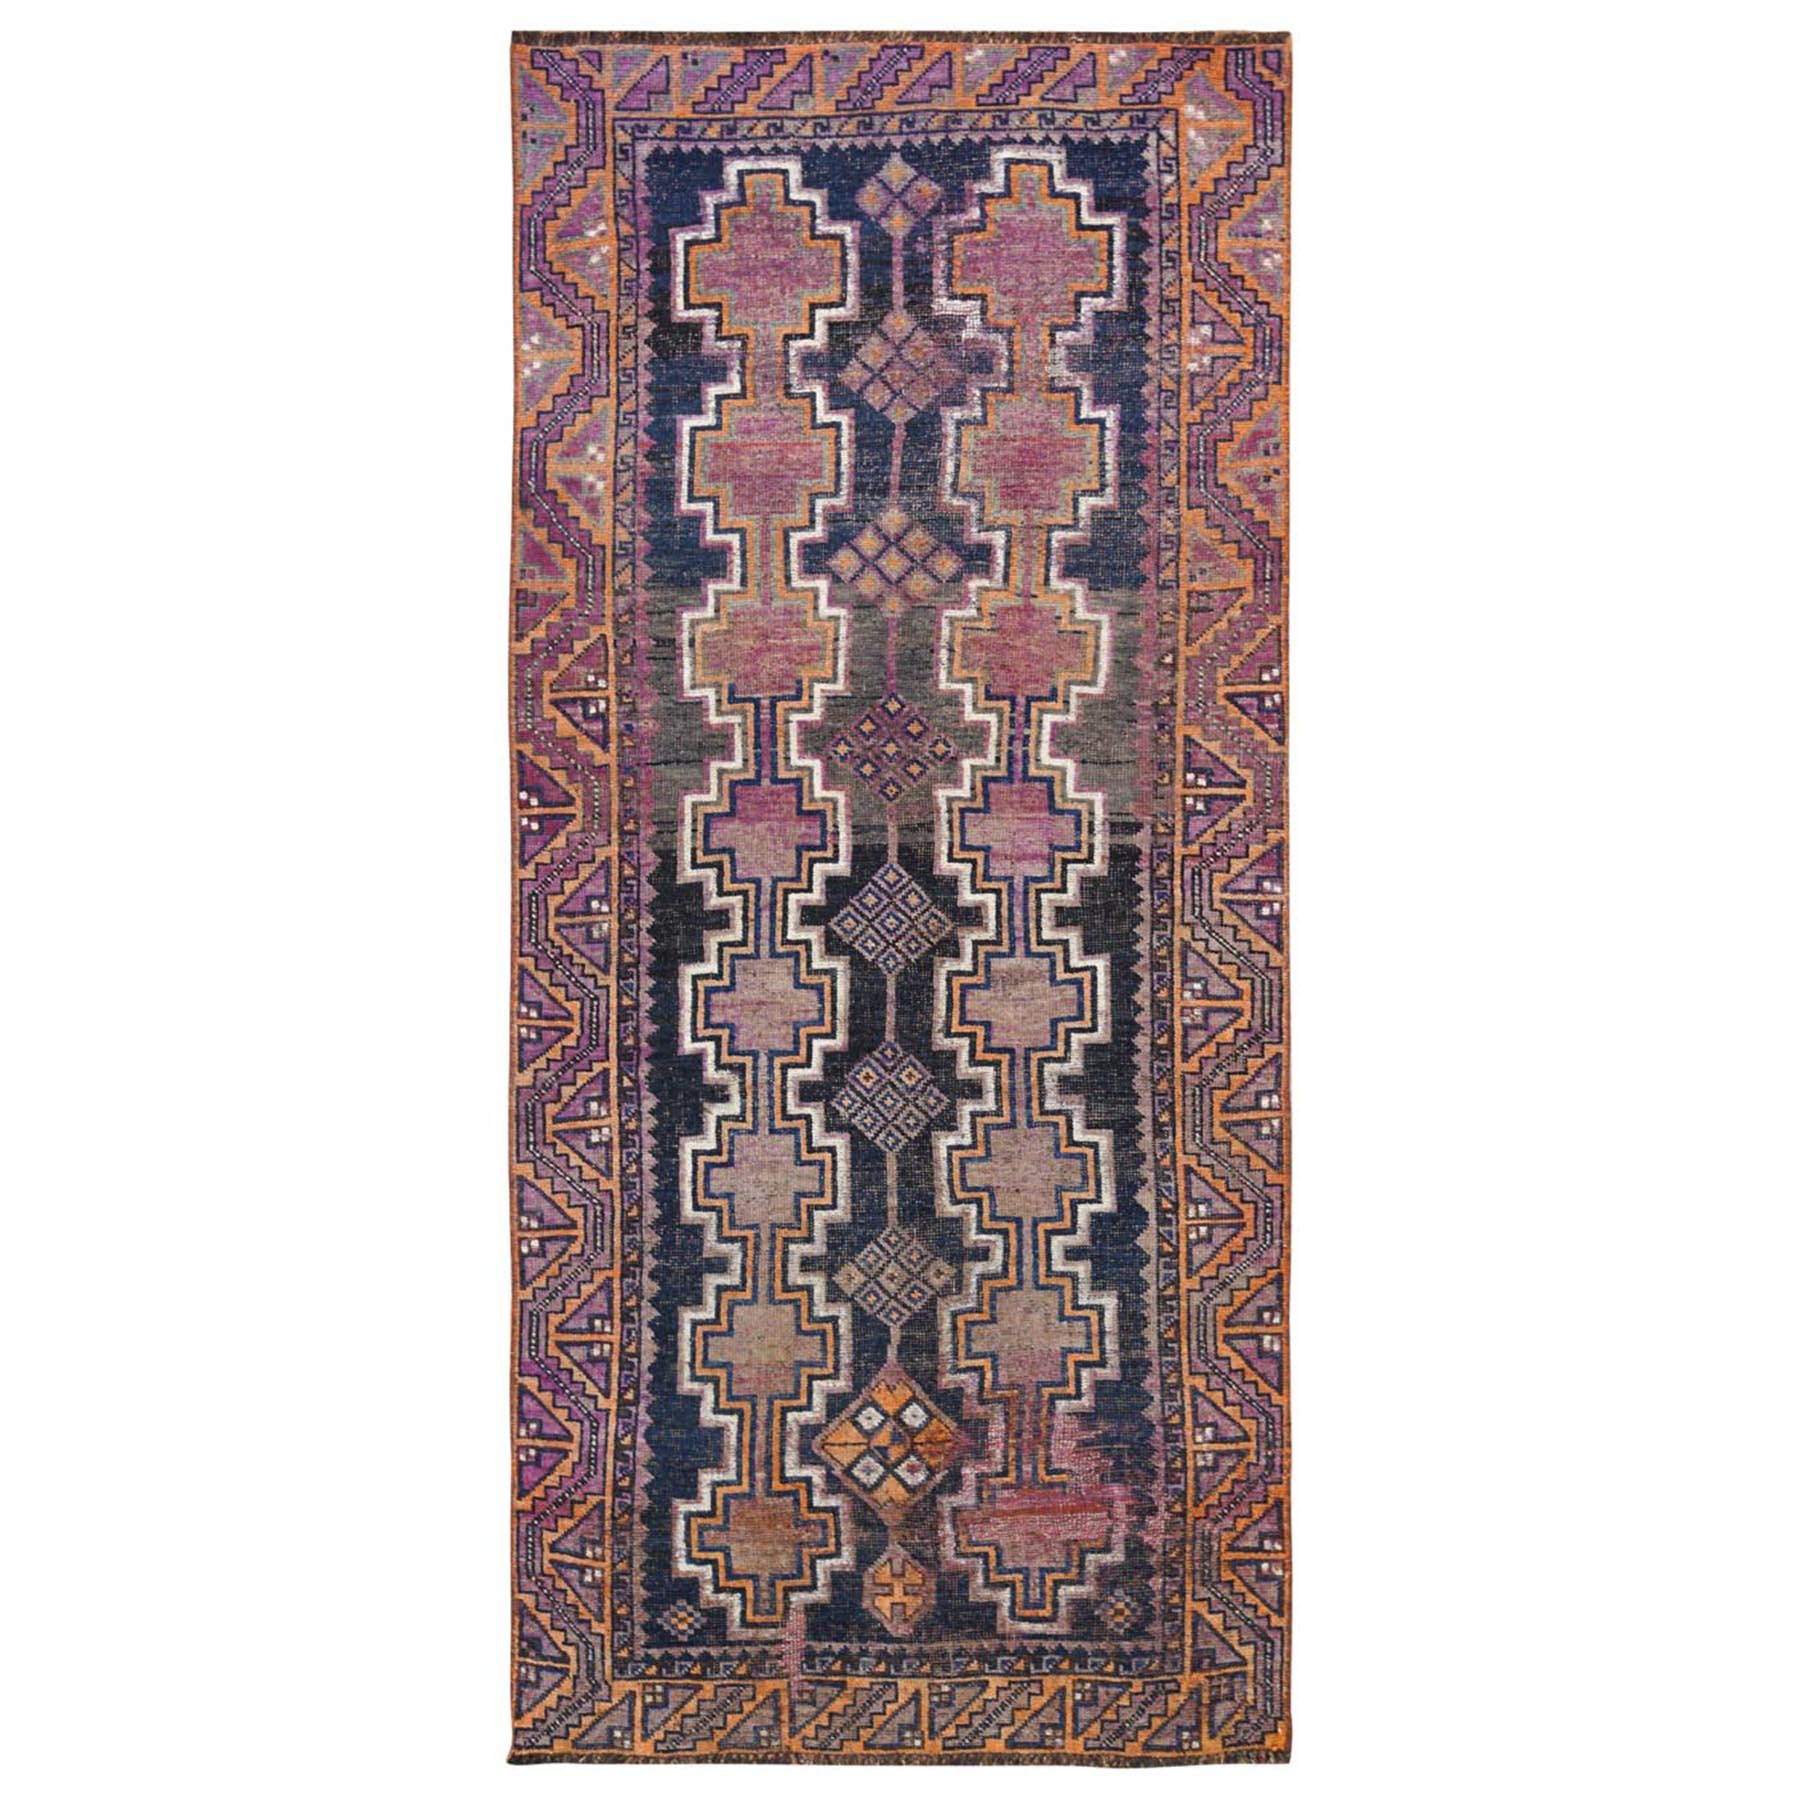 "4'x9'3"" Hand Woven Navy Blue Persian Shiraz Vintage Worn Down Clean Pure Wool Bohemian Oriental Gallery Size Runner Rug"